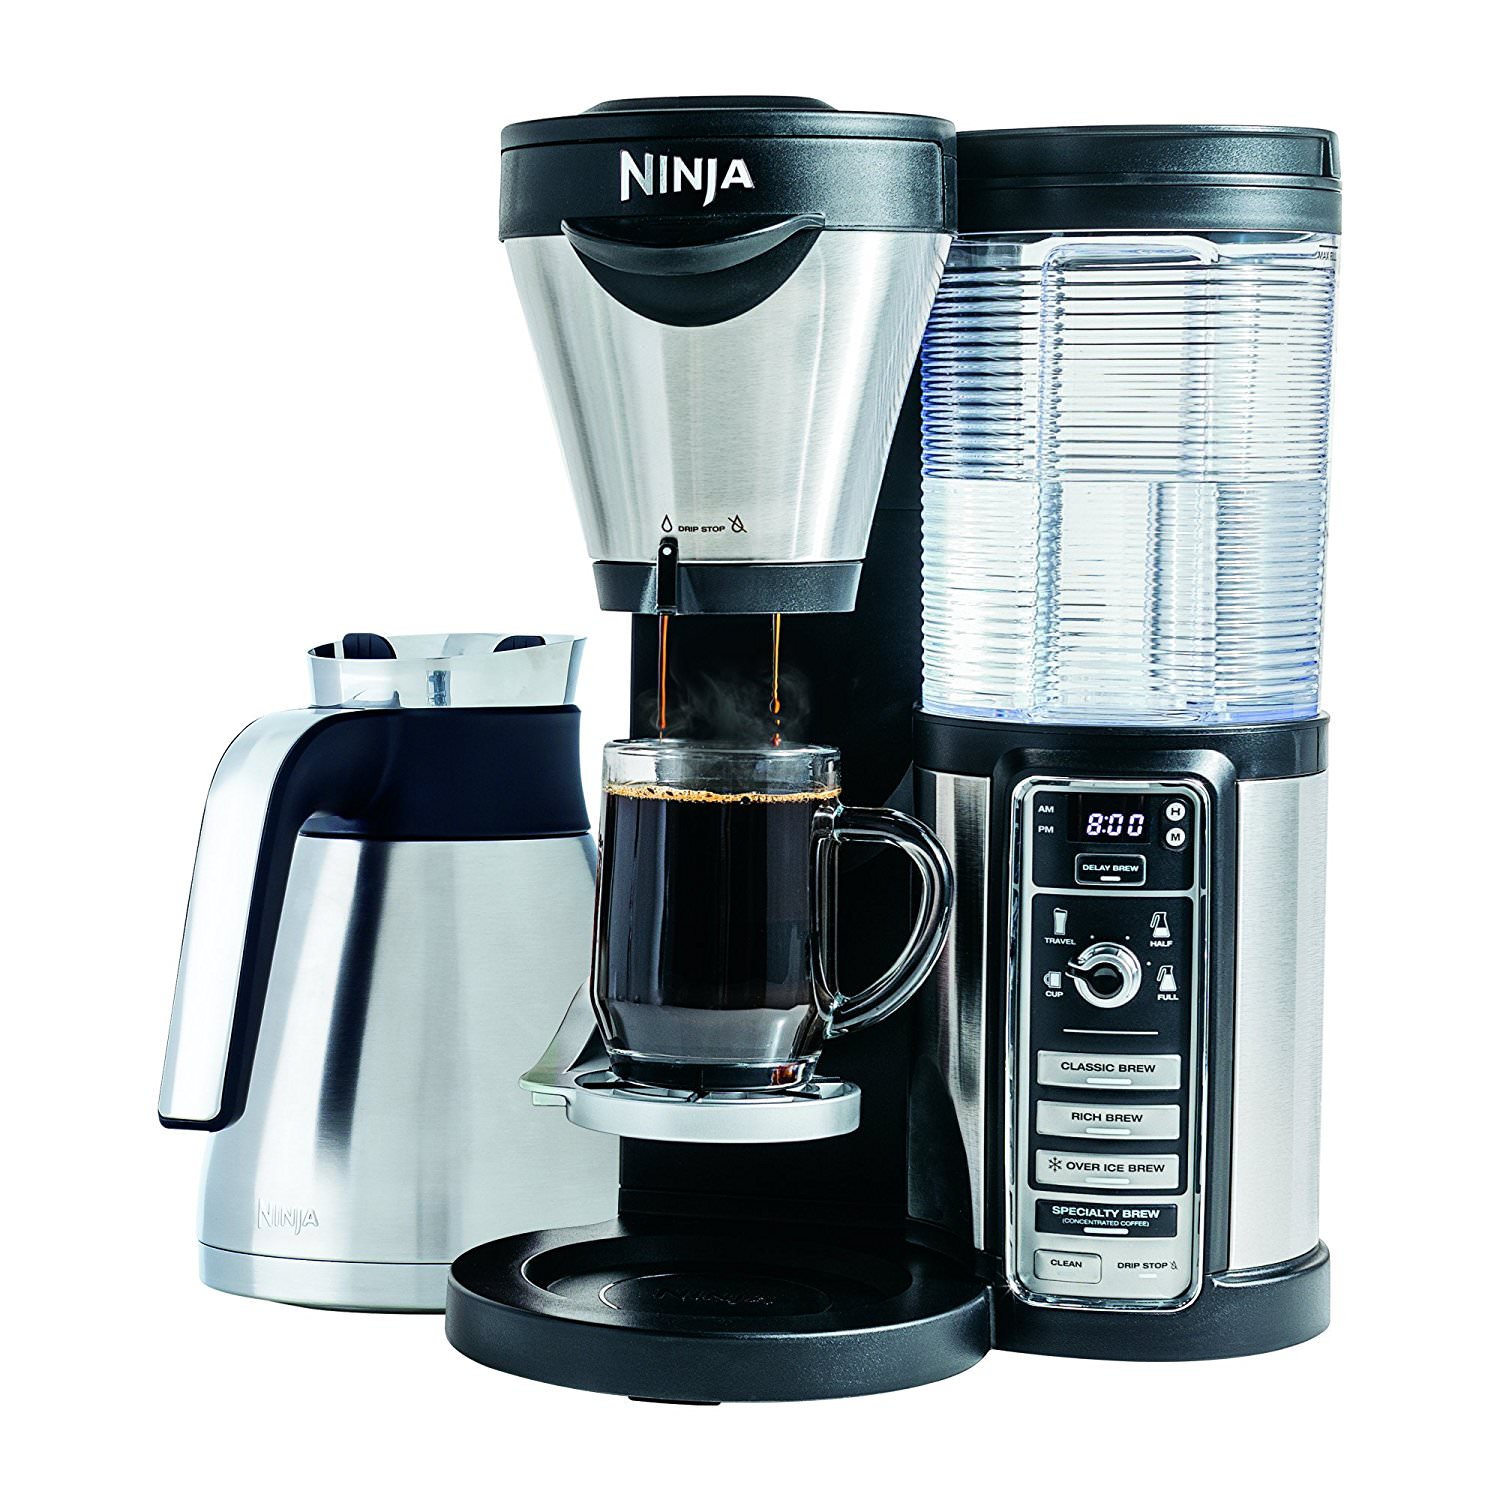 Ninja Coffee Bar Brewer, Thermal Carafe - Walmart.com